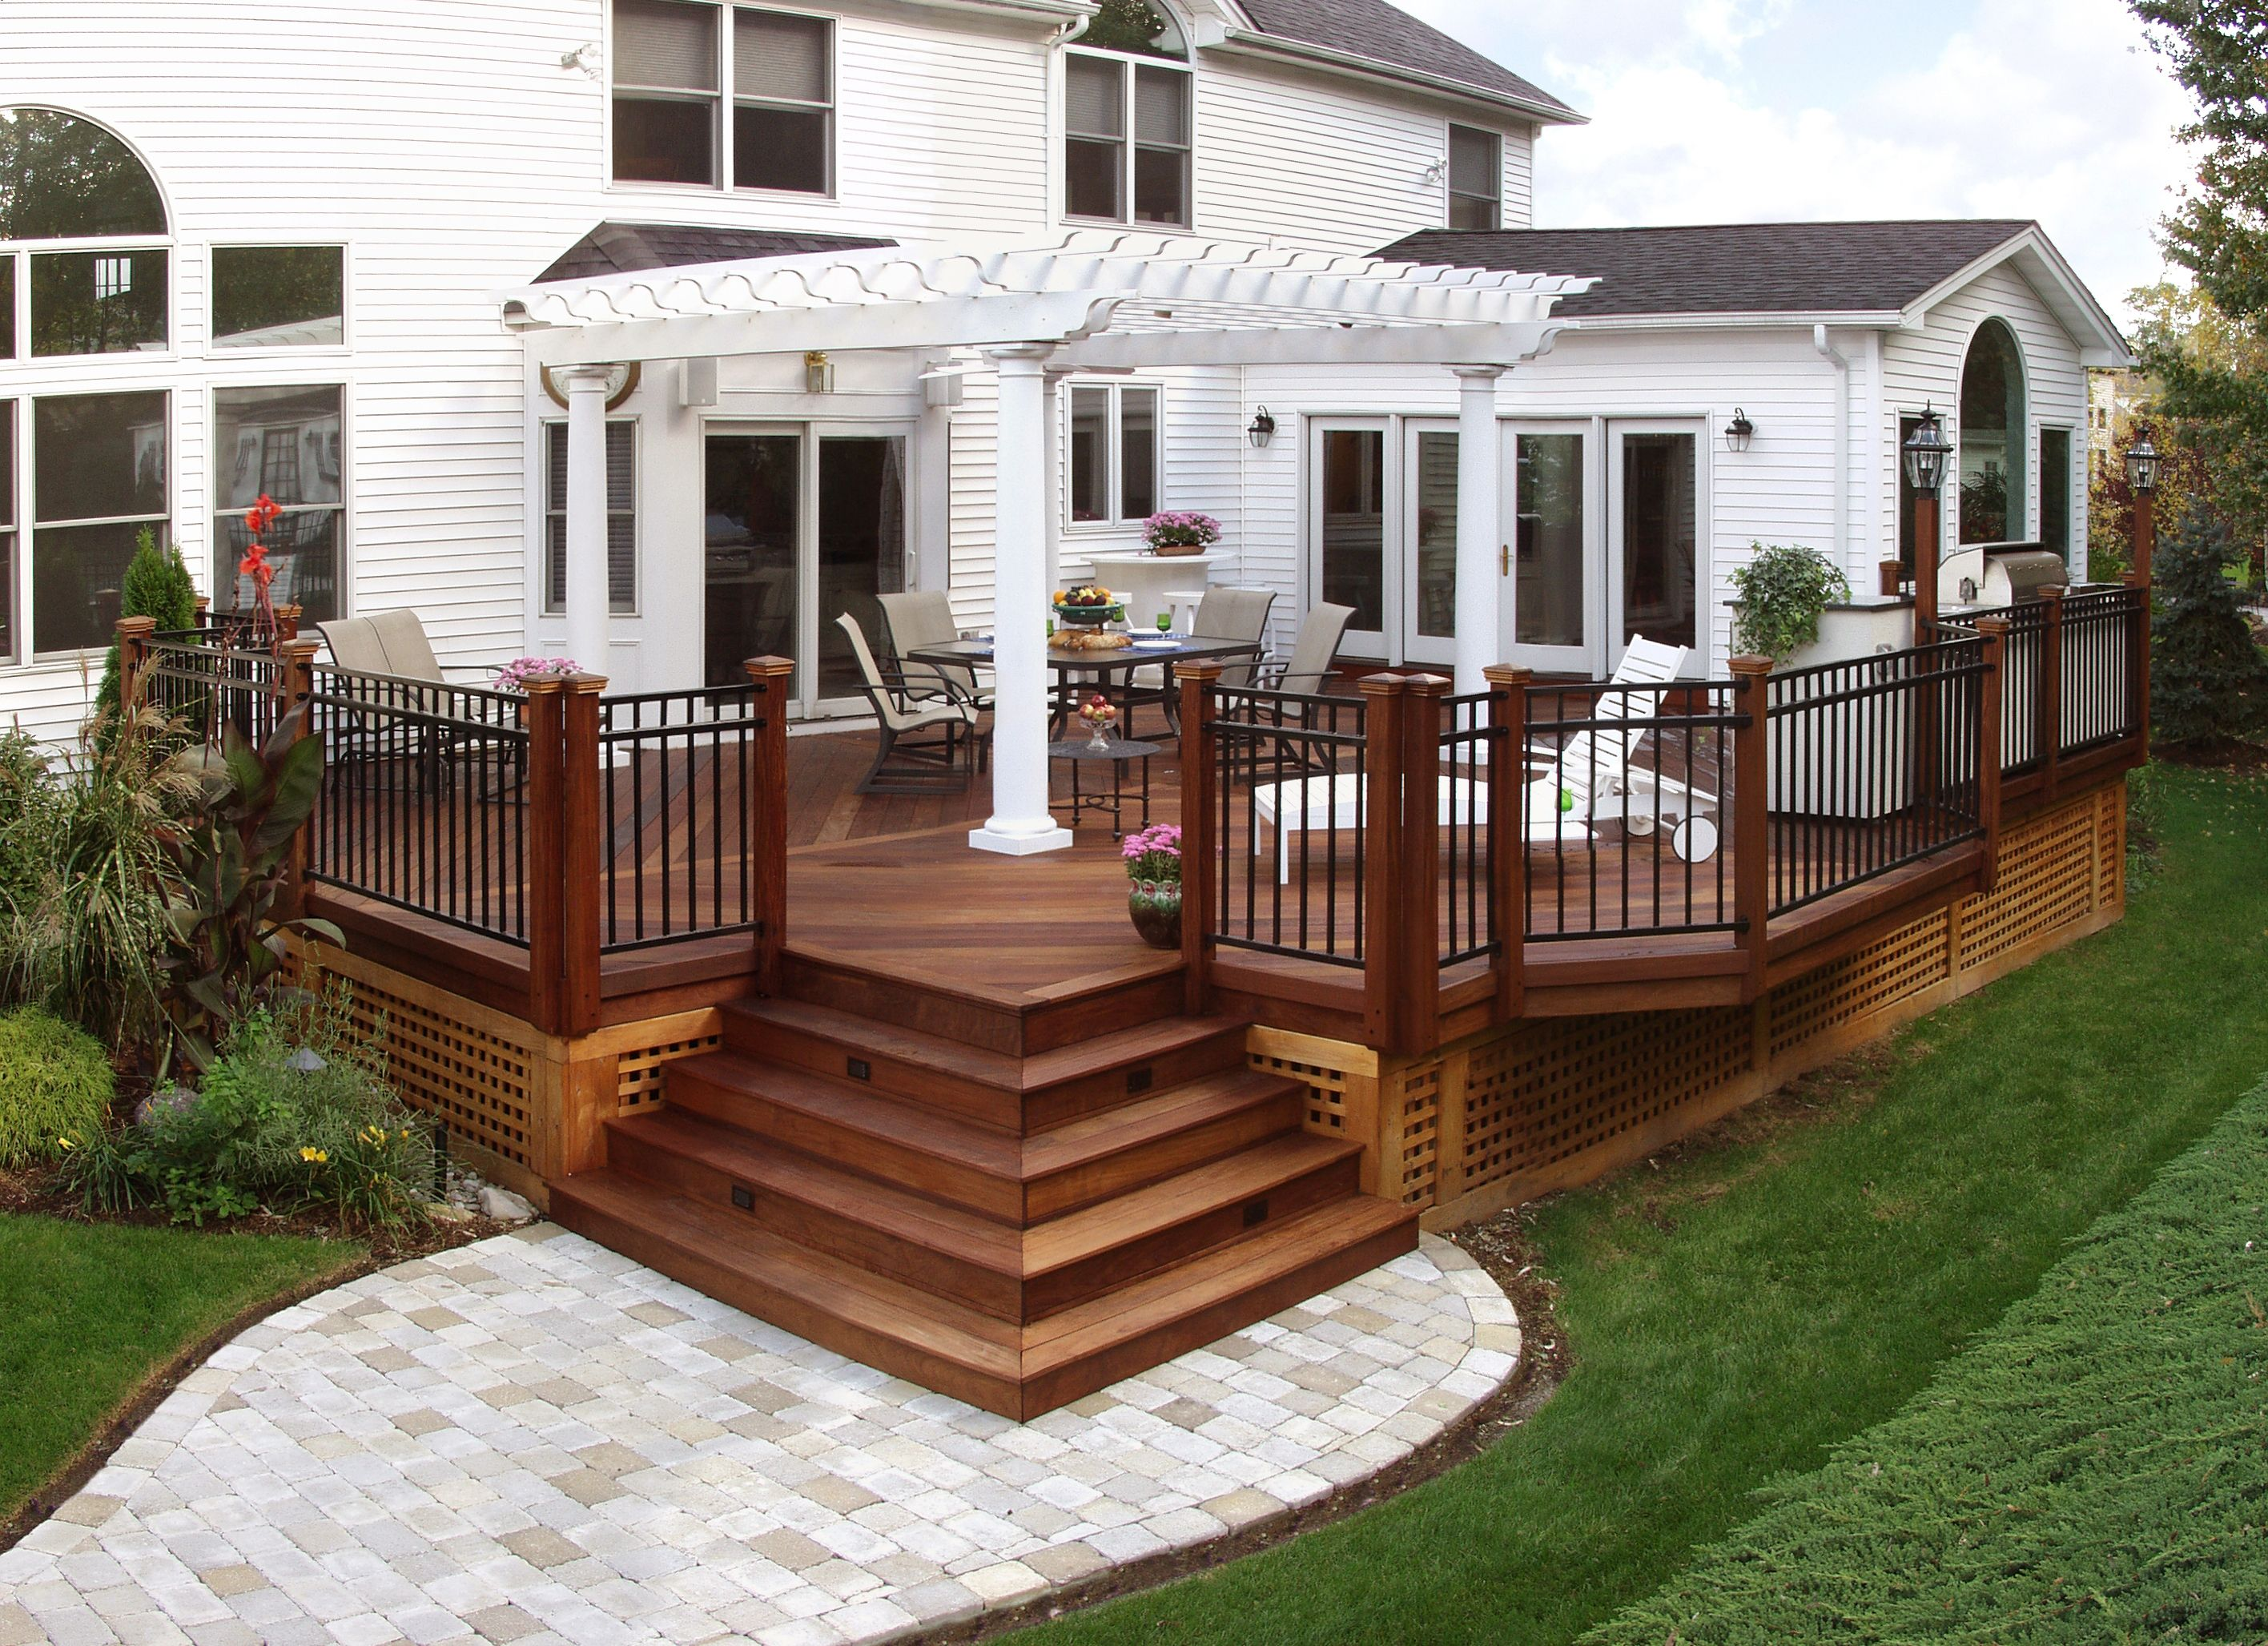 Pergola Enclosure Ideas My Blog